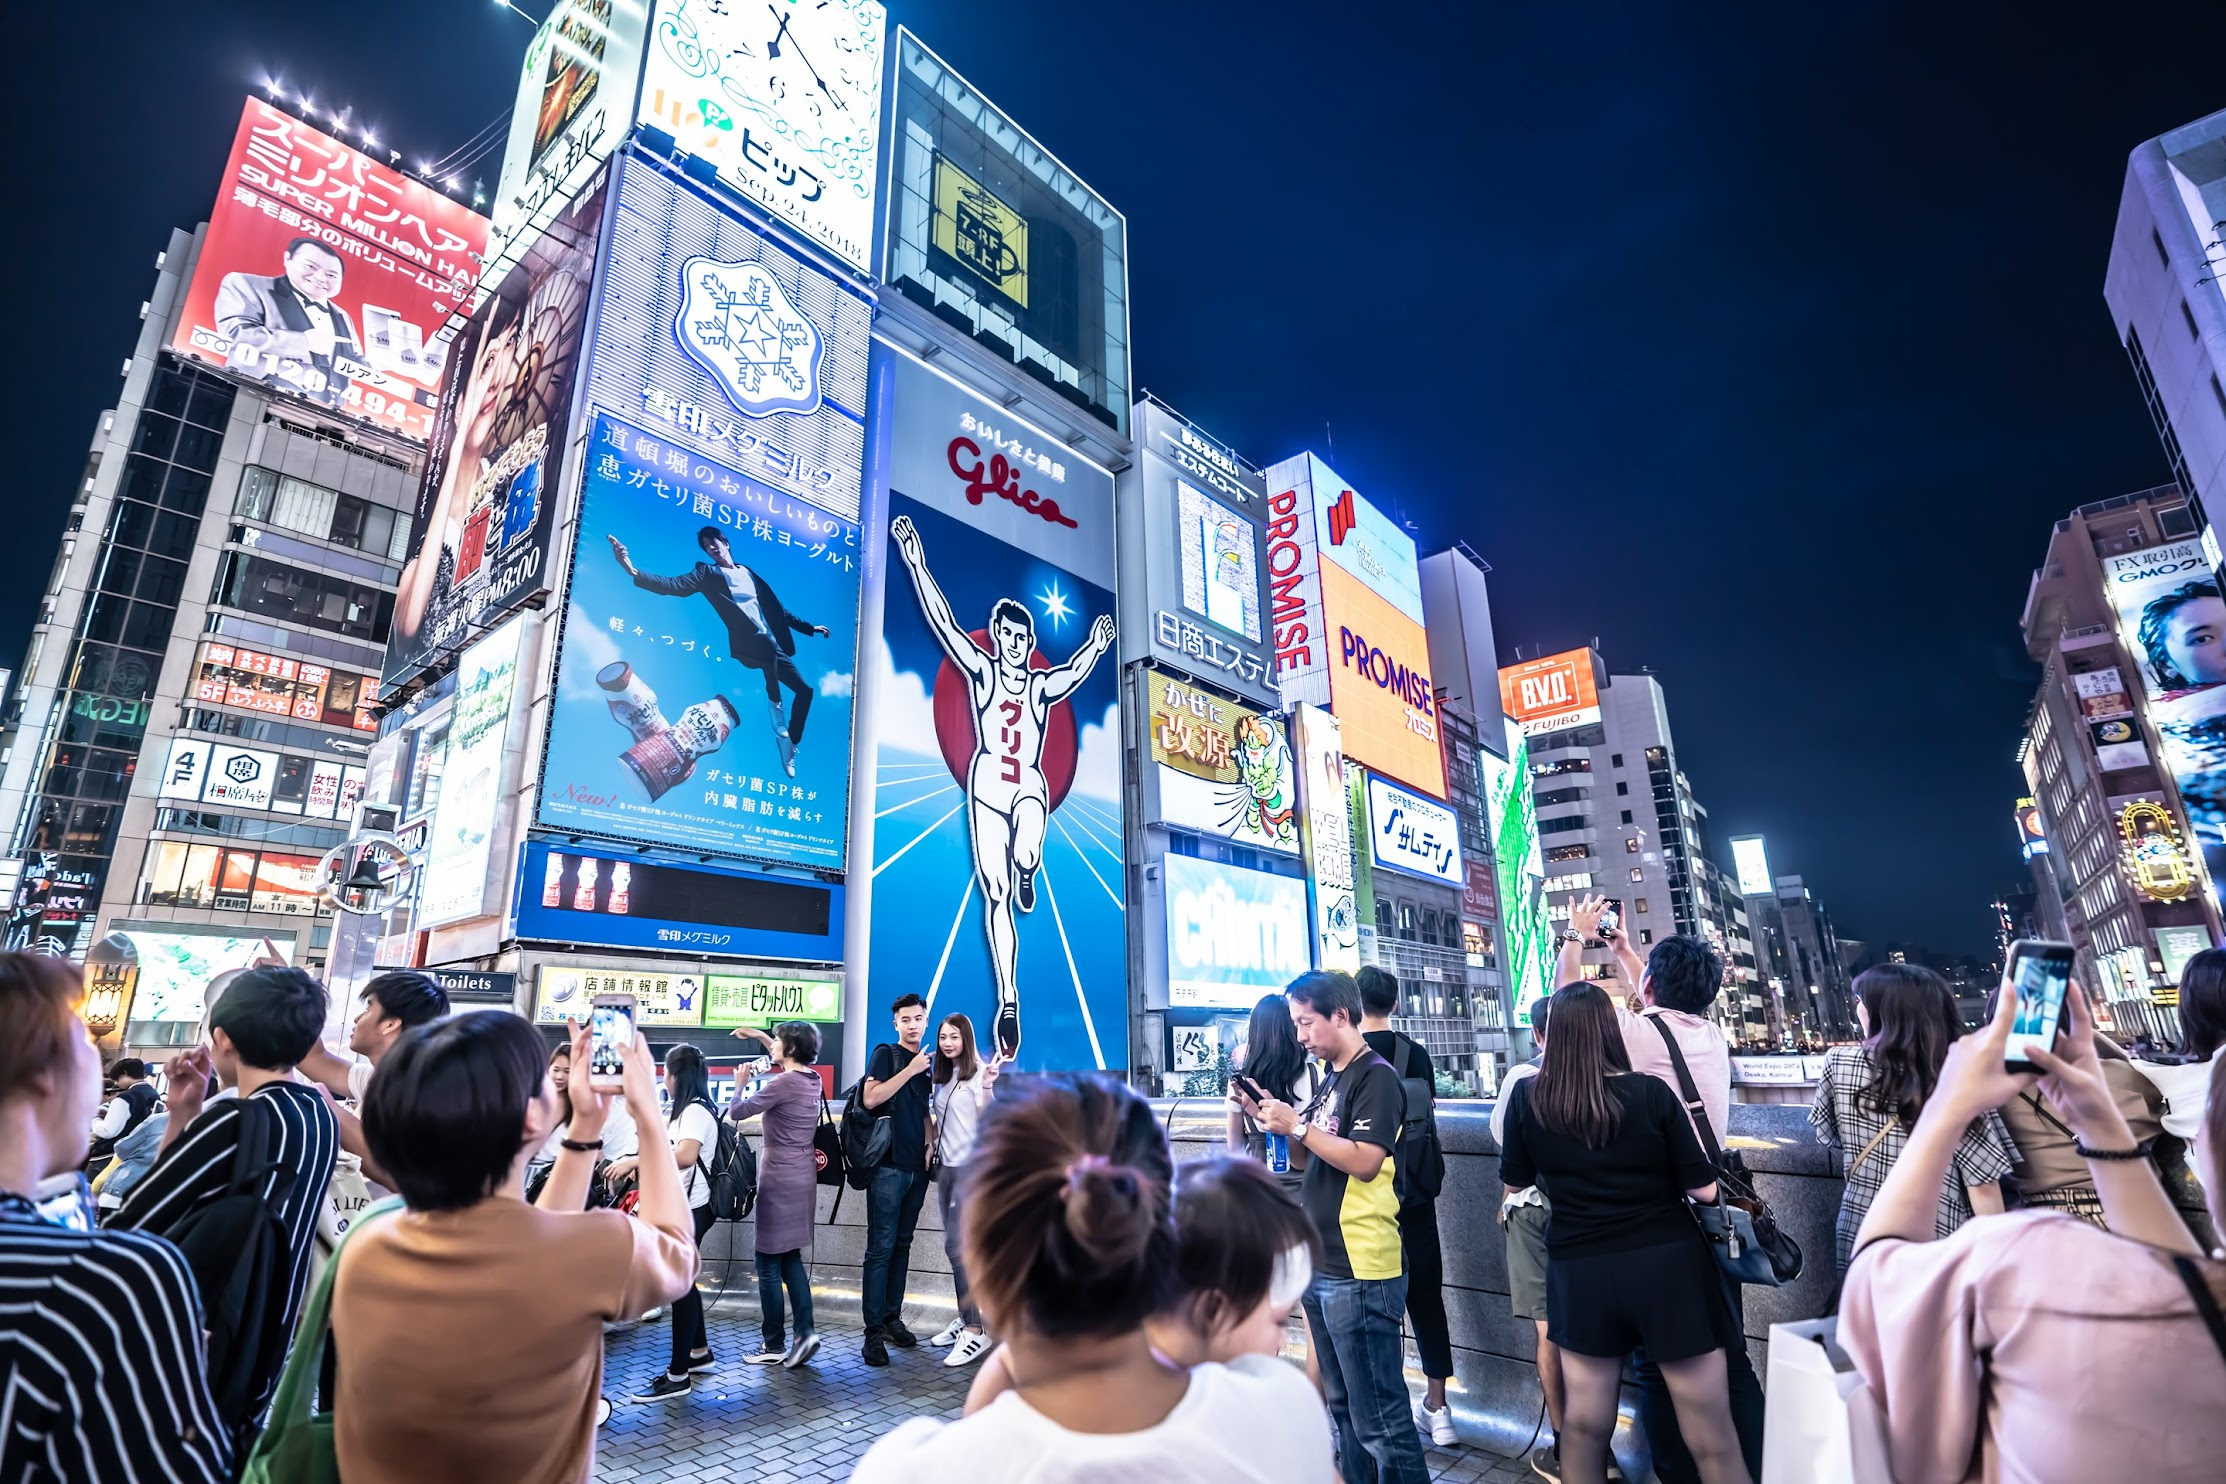 Dontonbori Glico Running Man evening2